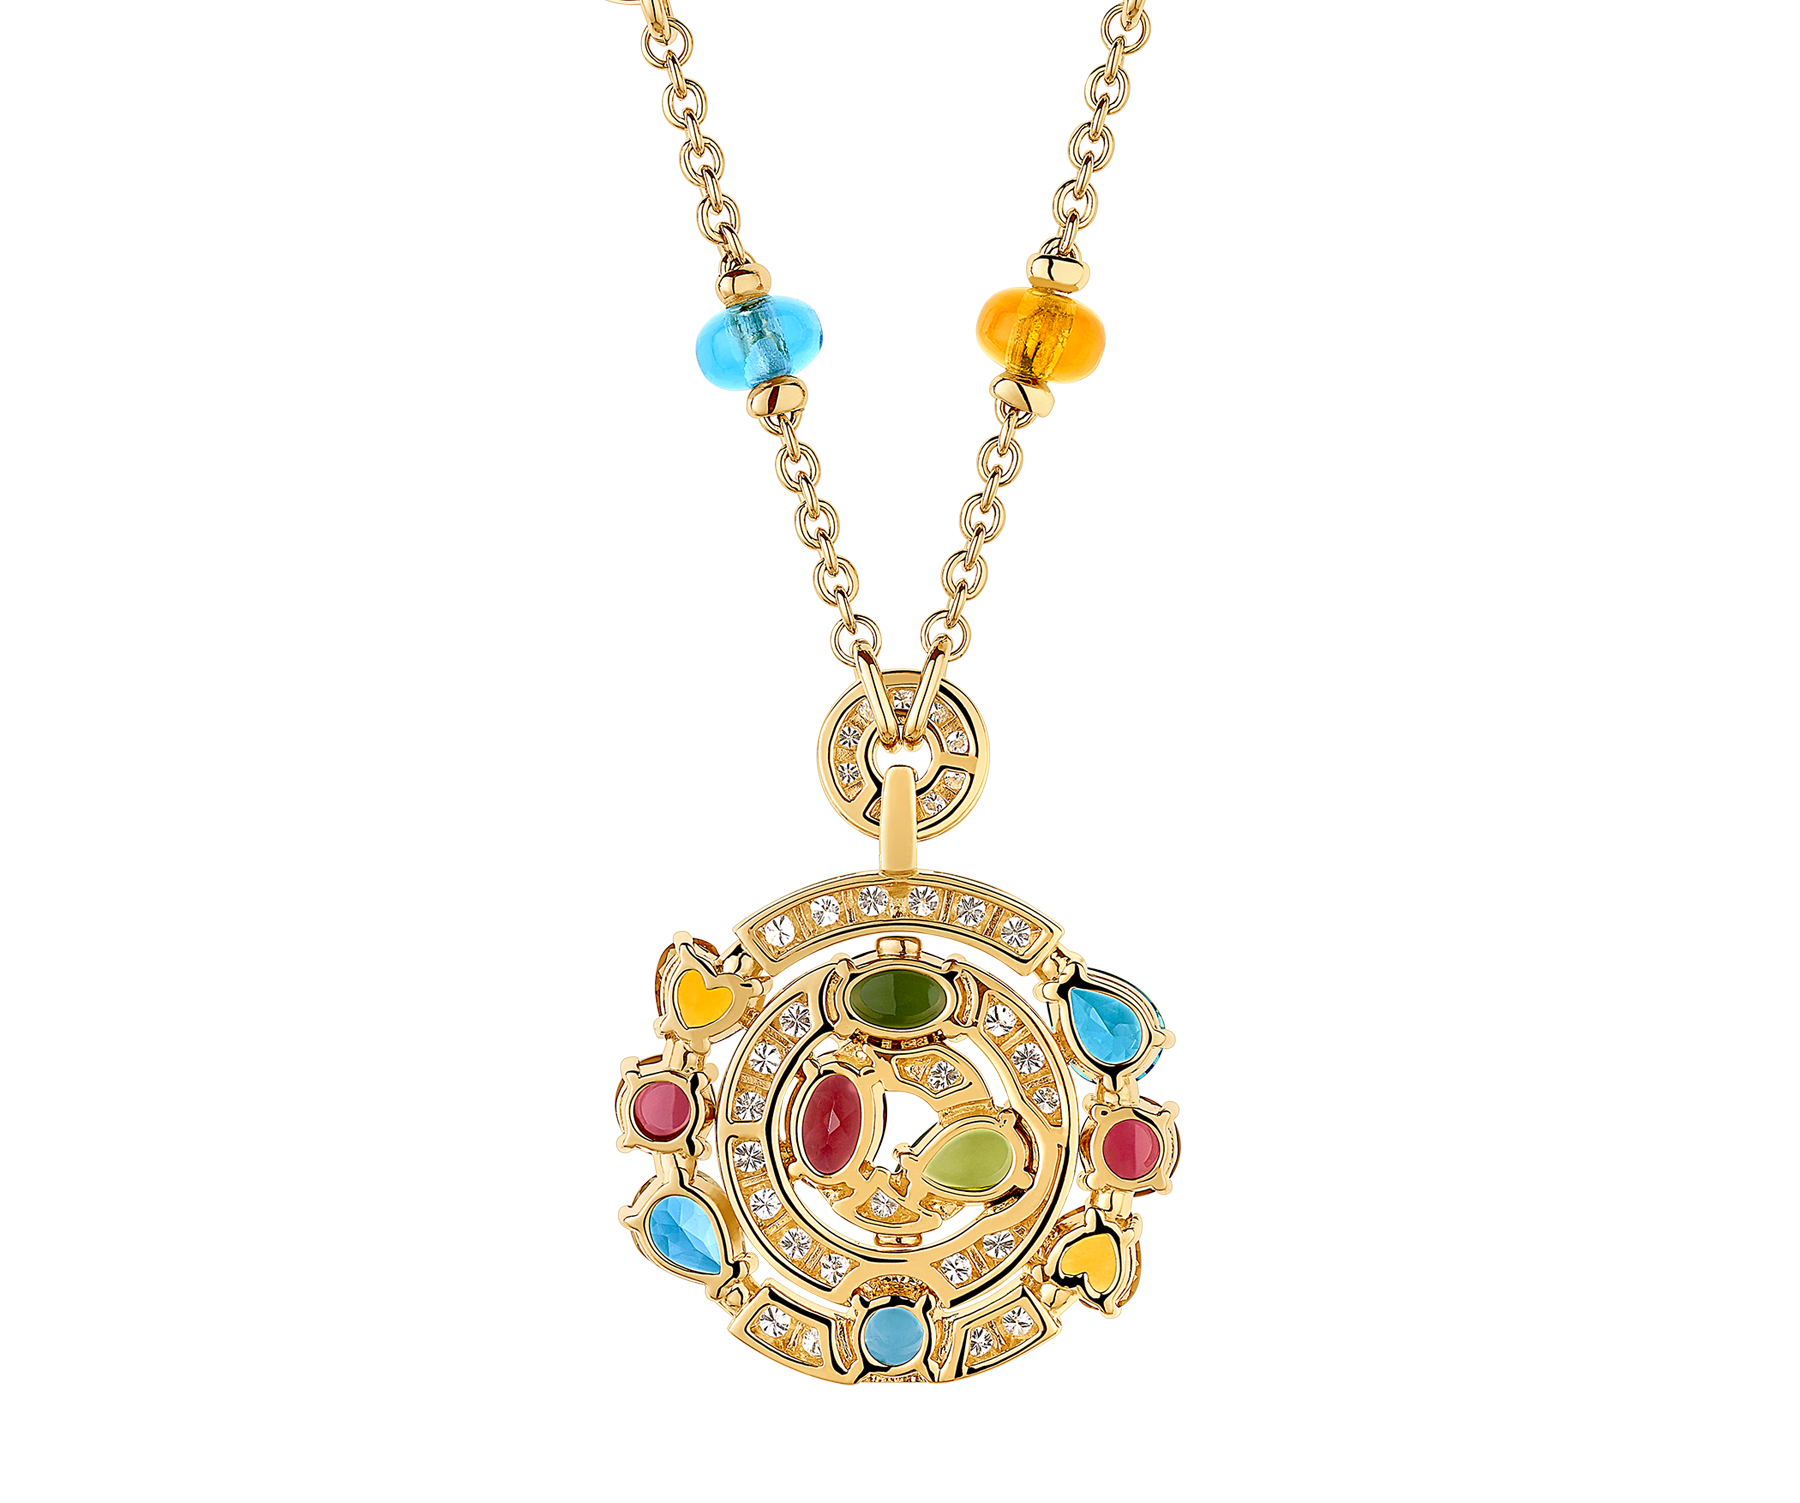 Cerchi 18 kt yellow gold large pendant necklace set with blue topazes, amethysts, green tourmalines, peridots, citrine quartz, rhodolite garnets and pavé diamonds 338229 image 3